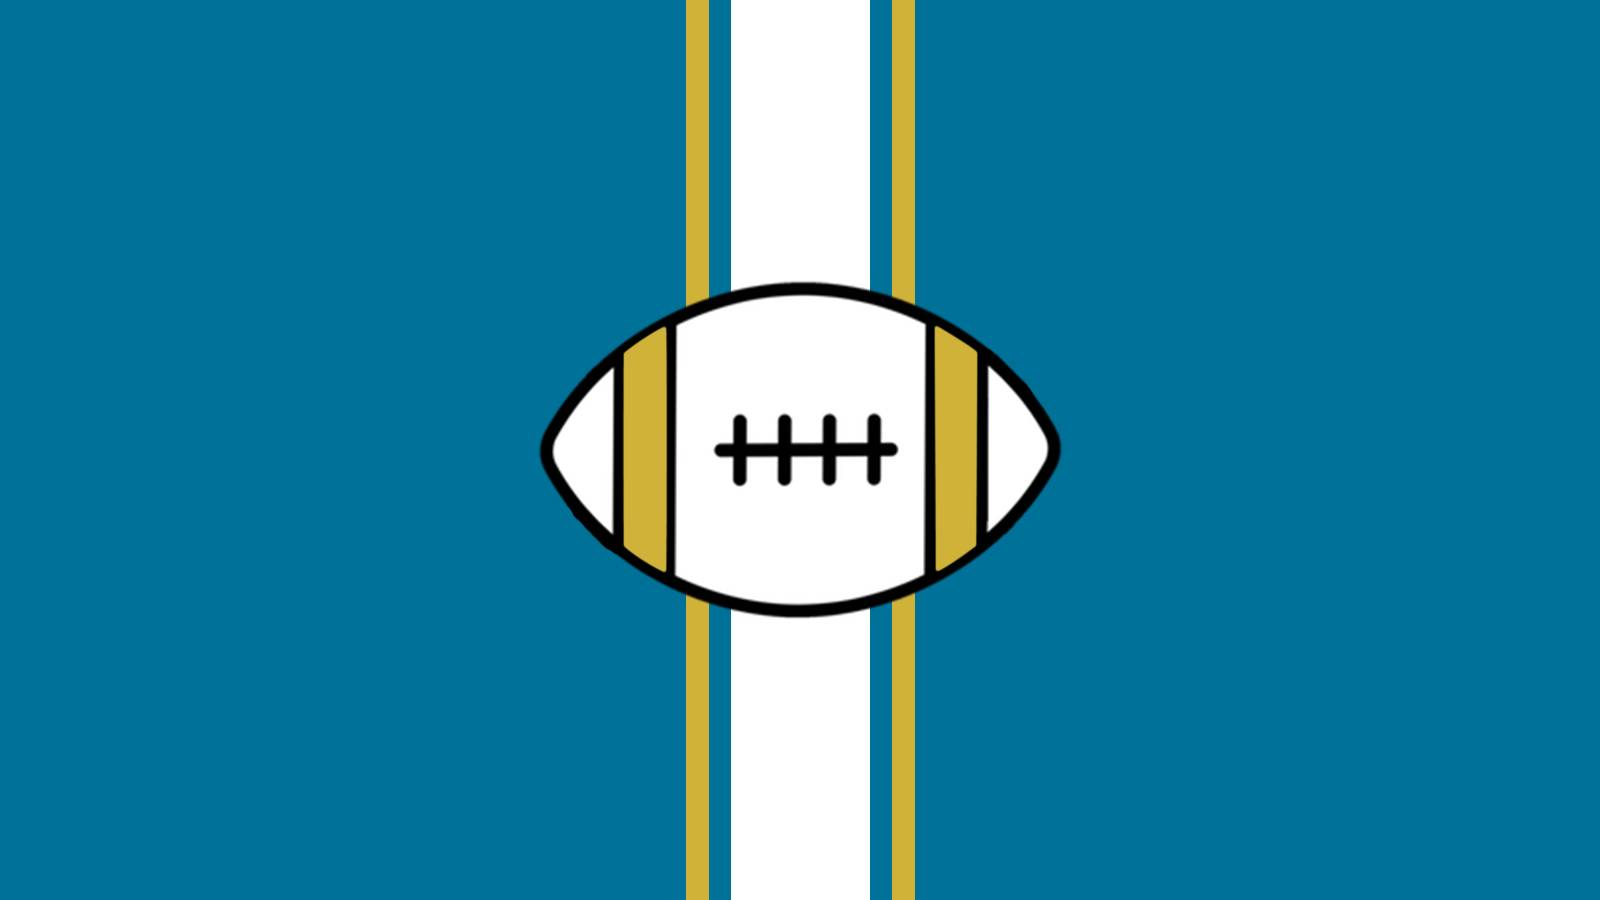 Miami Dolphins at Jacksonville Jaguars (Thursday Night Football)